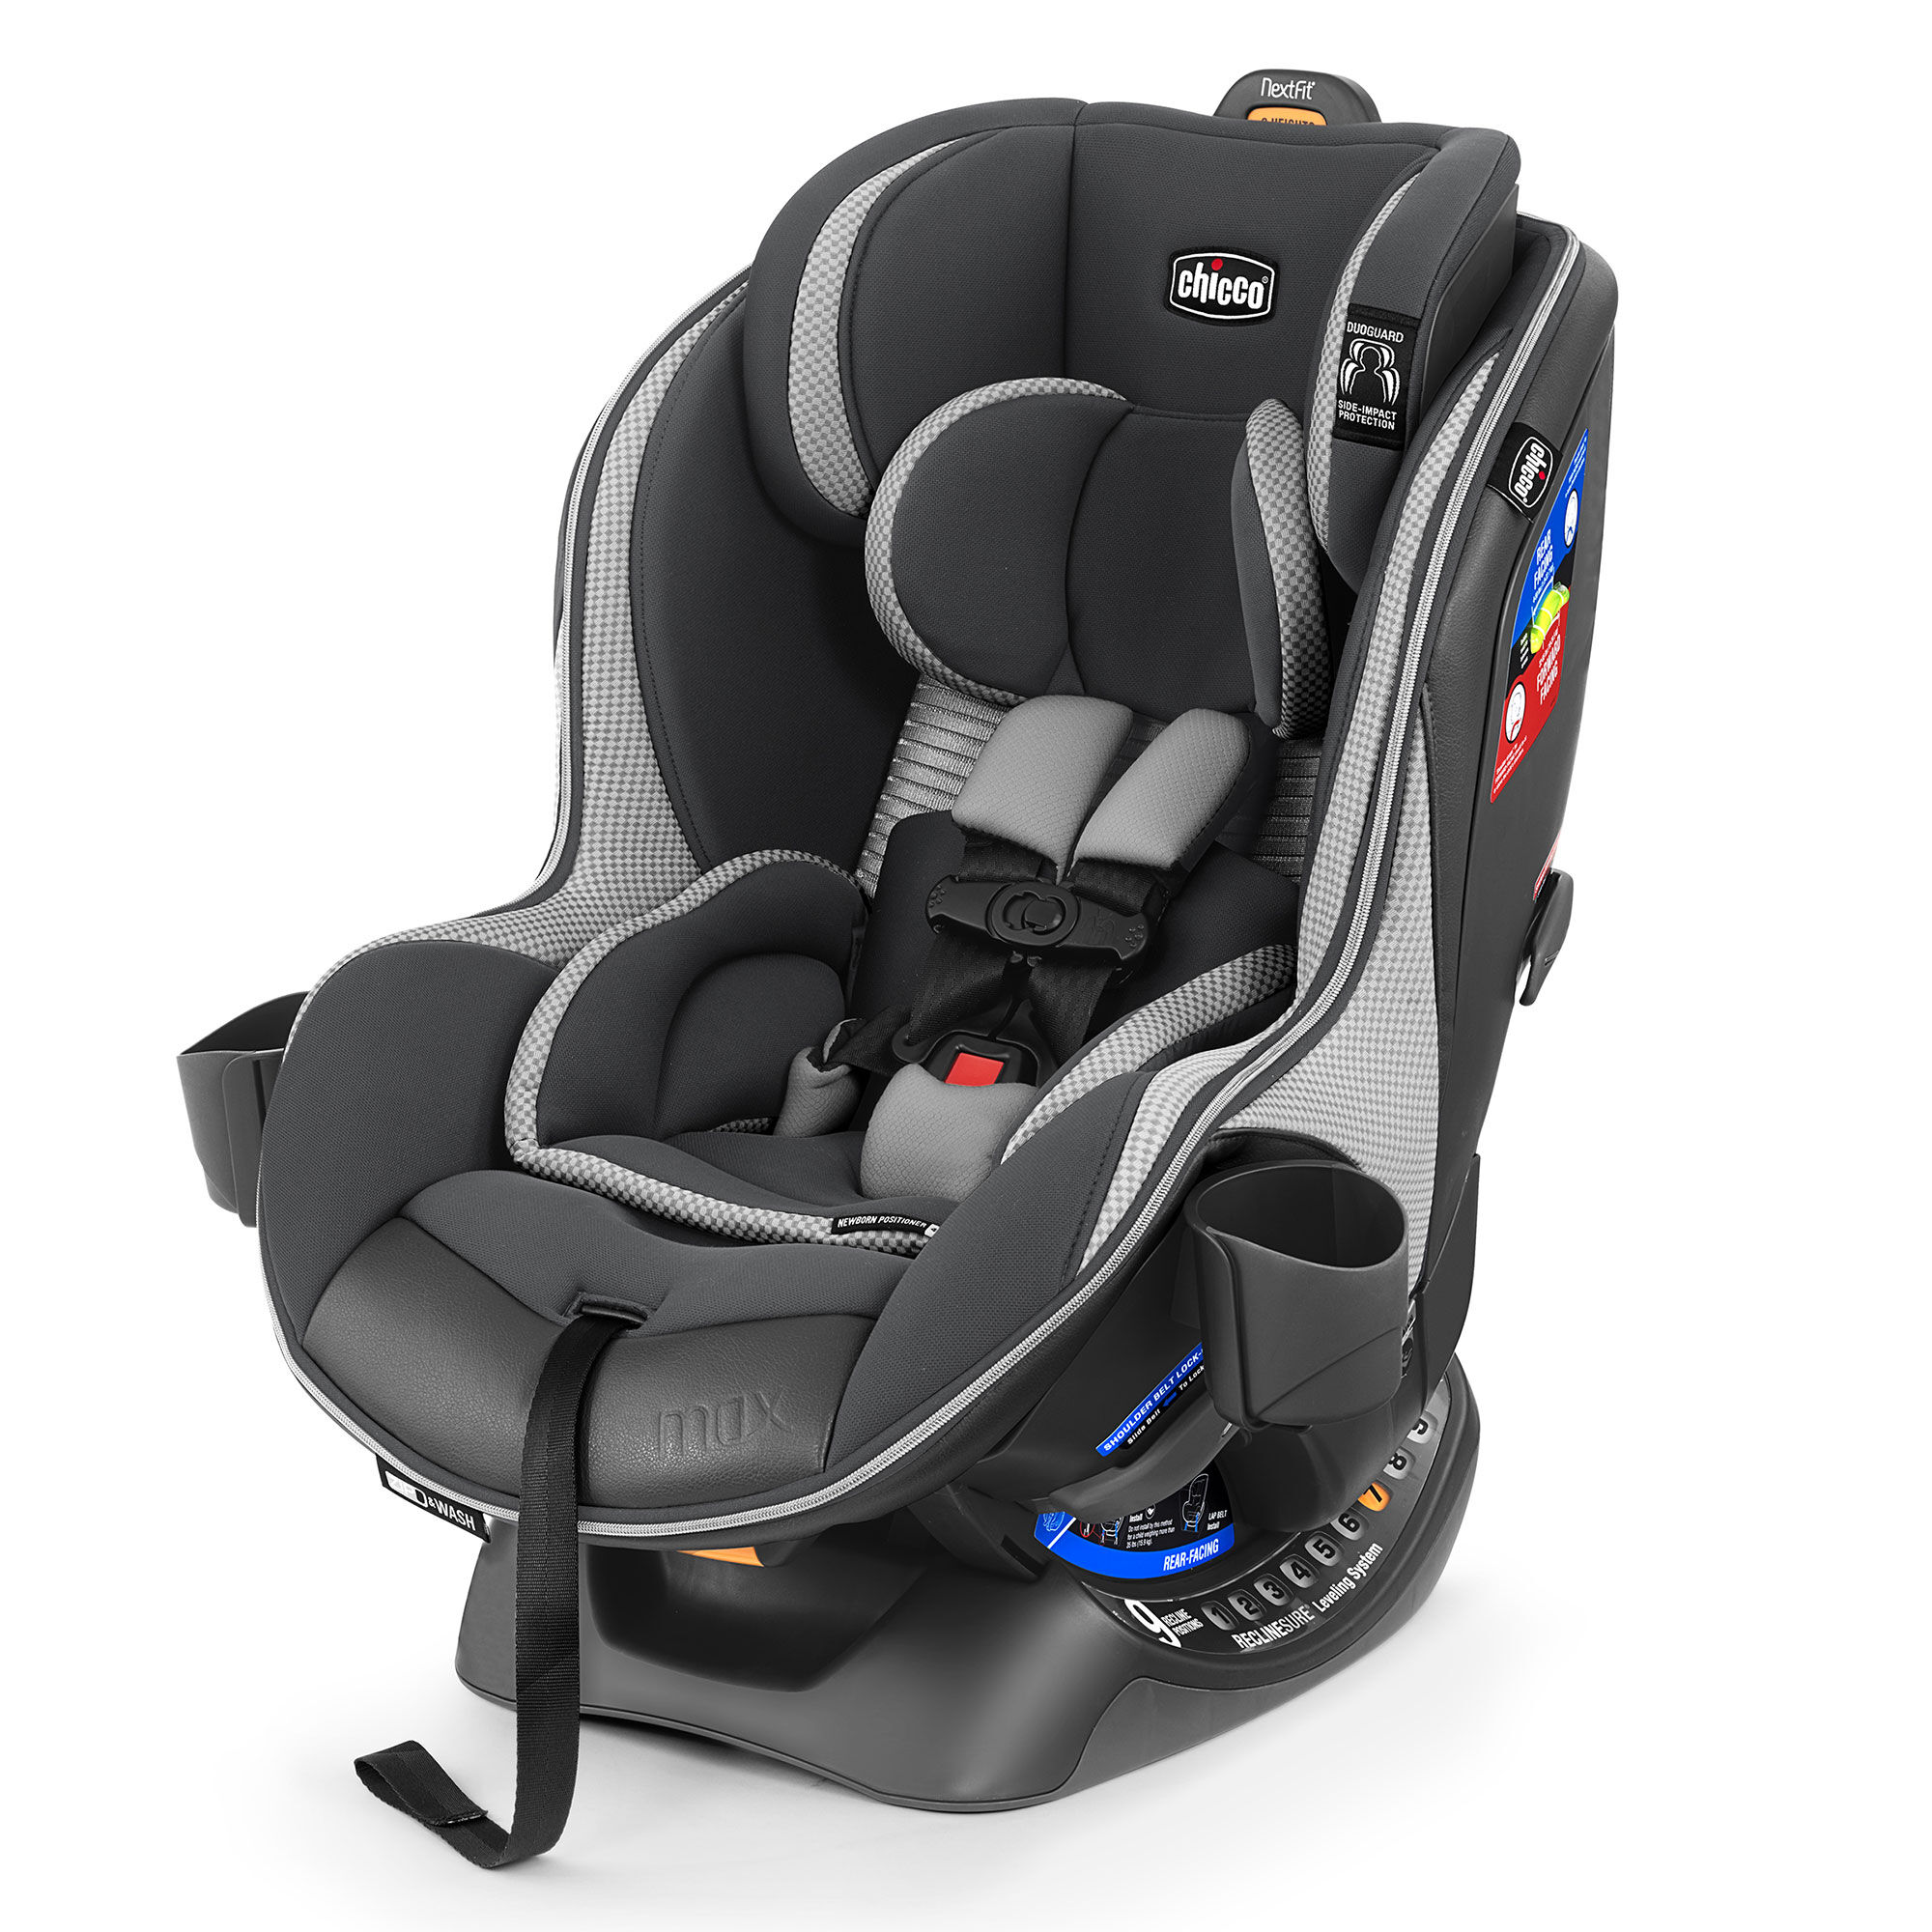 NextFit Zip Max Extended-Use Convertible Car Seat | Chicco